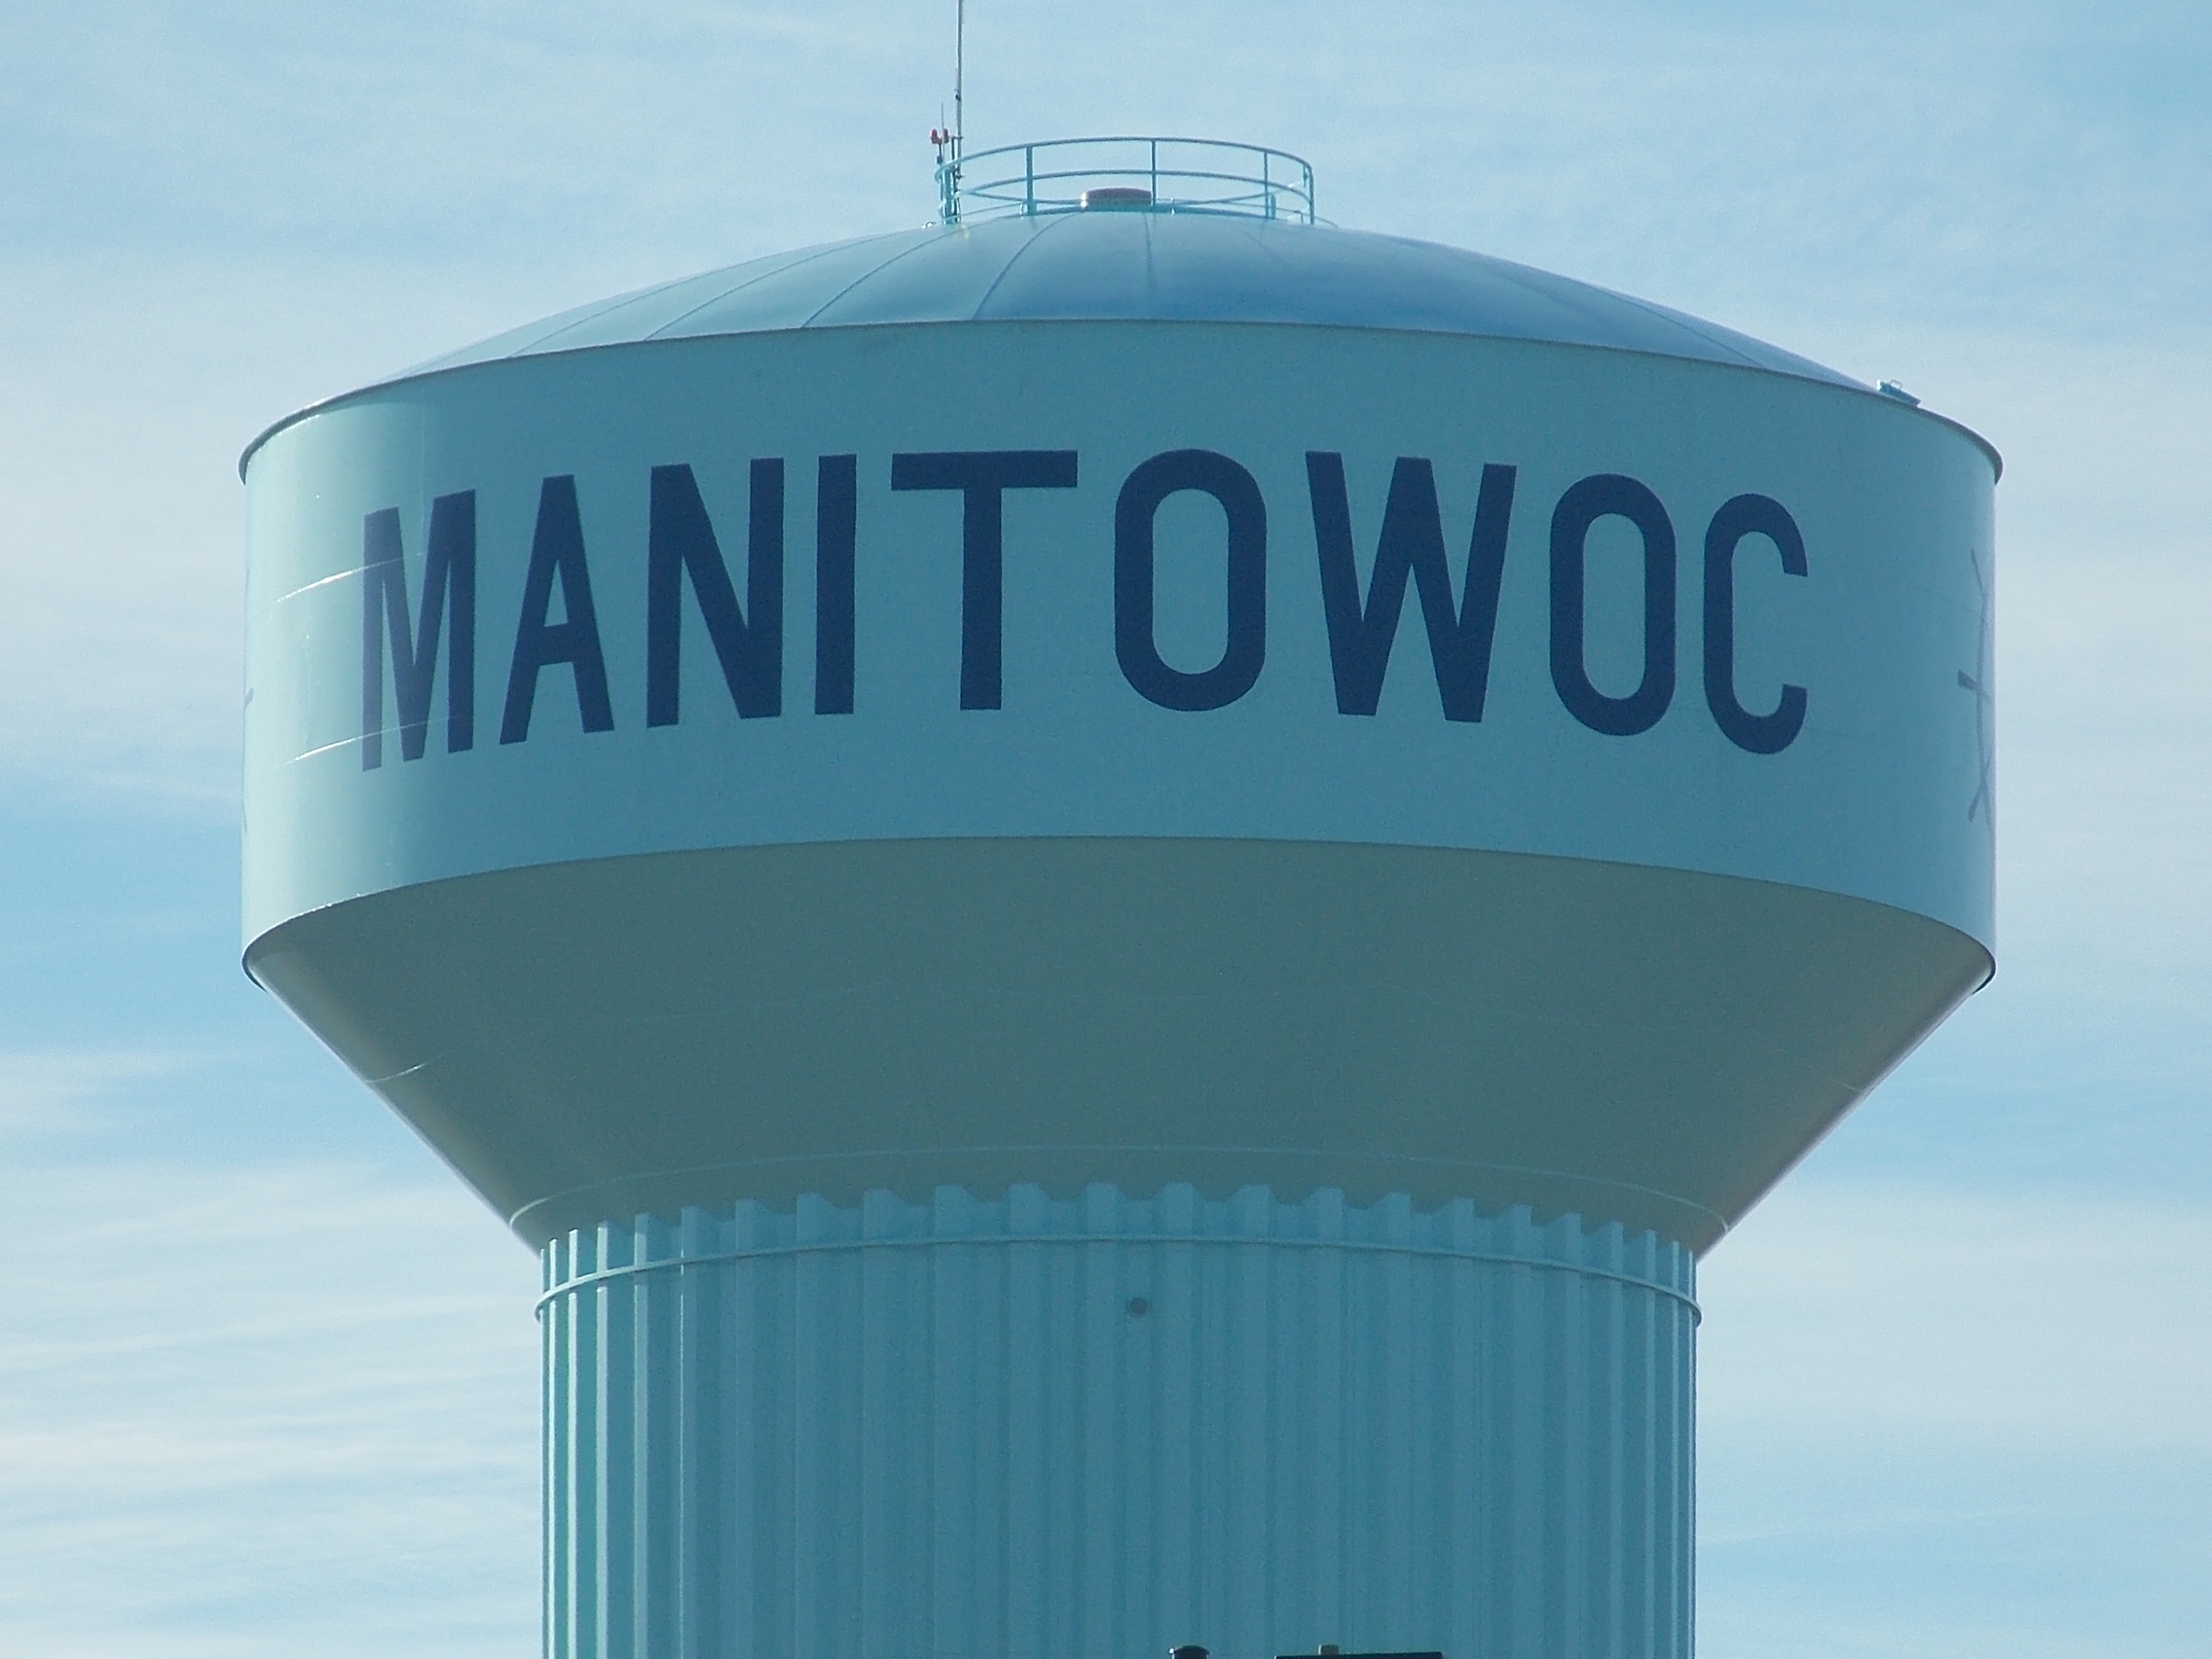 Manitowoc Common Council Committee Discusses Possible Action on Council Member